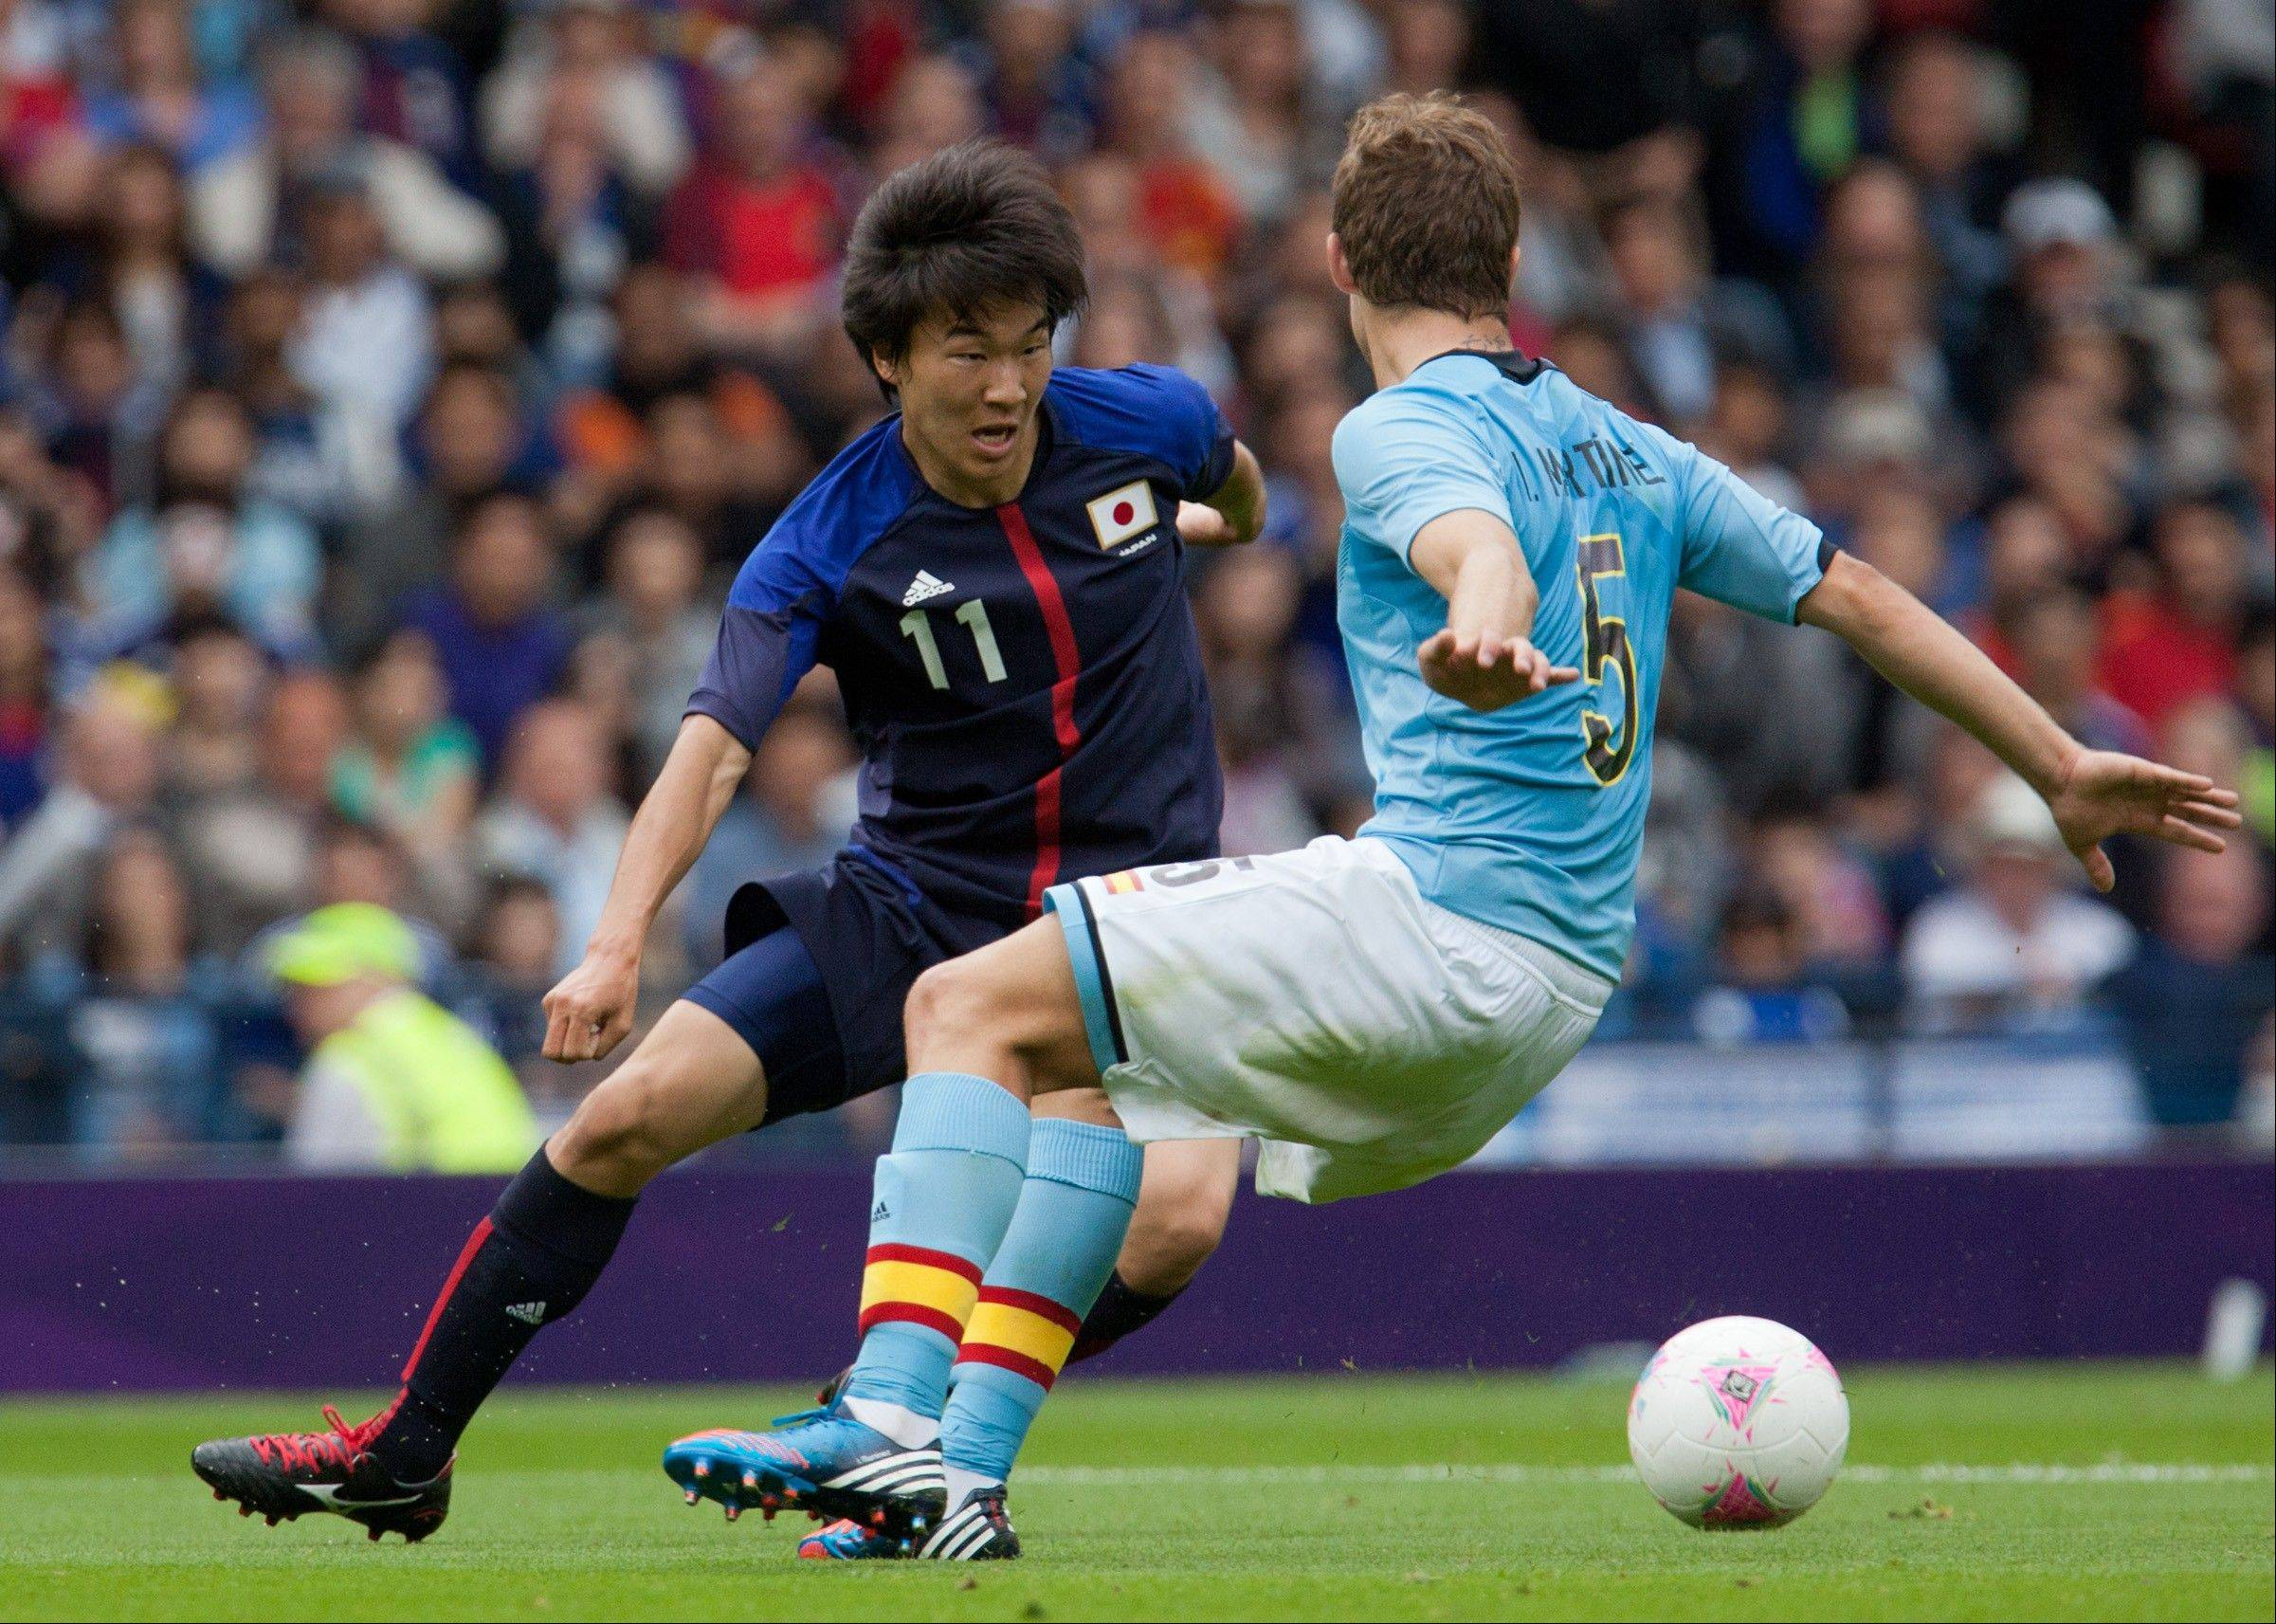 Japan's Kensuke Nagai, left, battles for the ball with Spain's Inigo Martinez, right during the group D men's soccer match between Japan and Spain at the London 2012 Summer Olympics, Thursday, July 26, 2012, at Hampden Park Stadium in Glasgow, Scotland. Japan won 1-0.